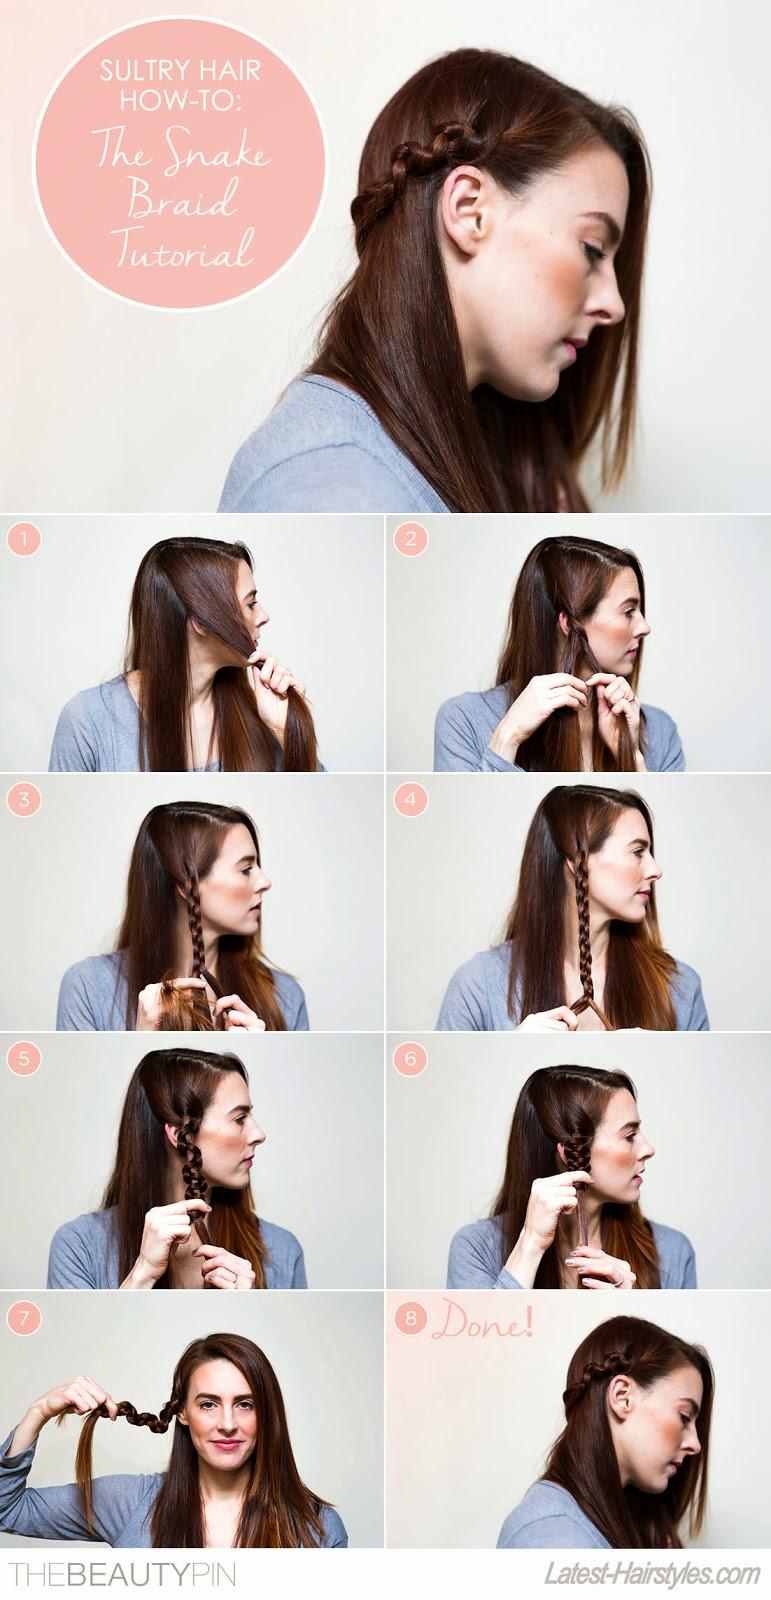 The Snake Braid in 8 Easy Steps - The Daily Fashion and Beauty News